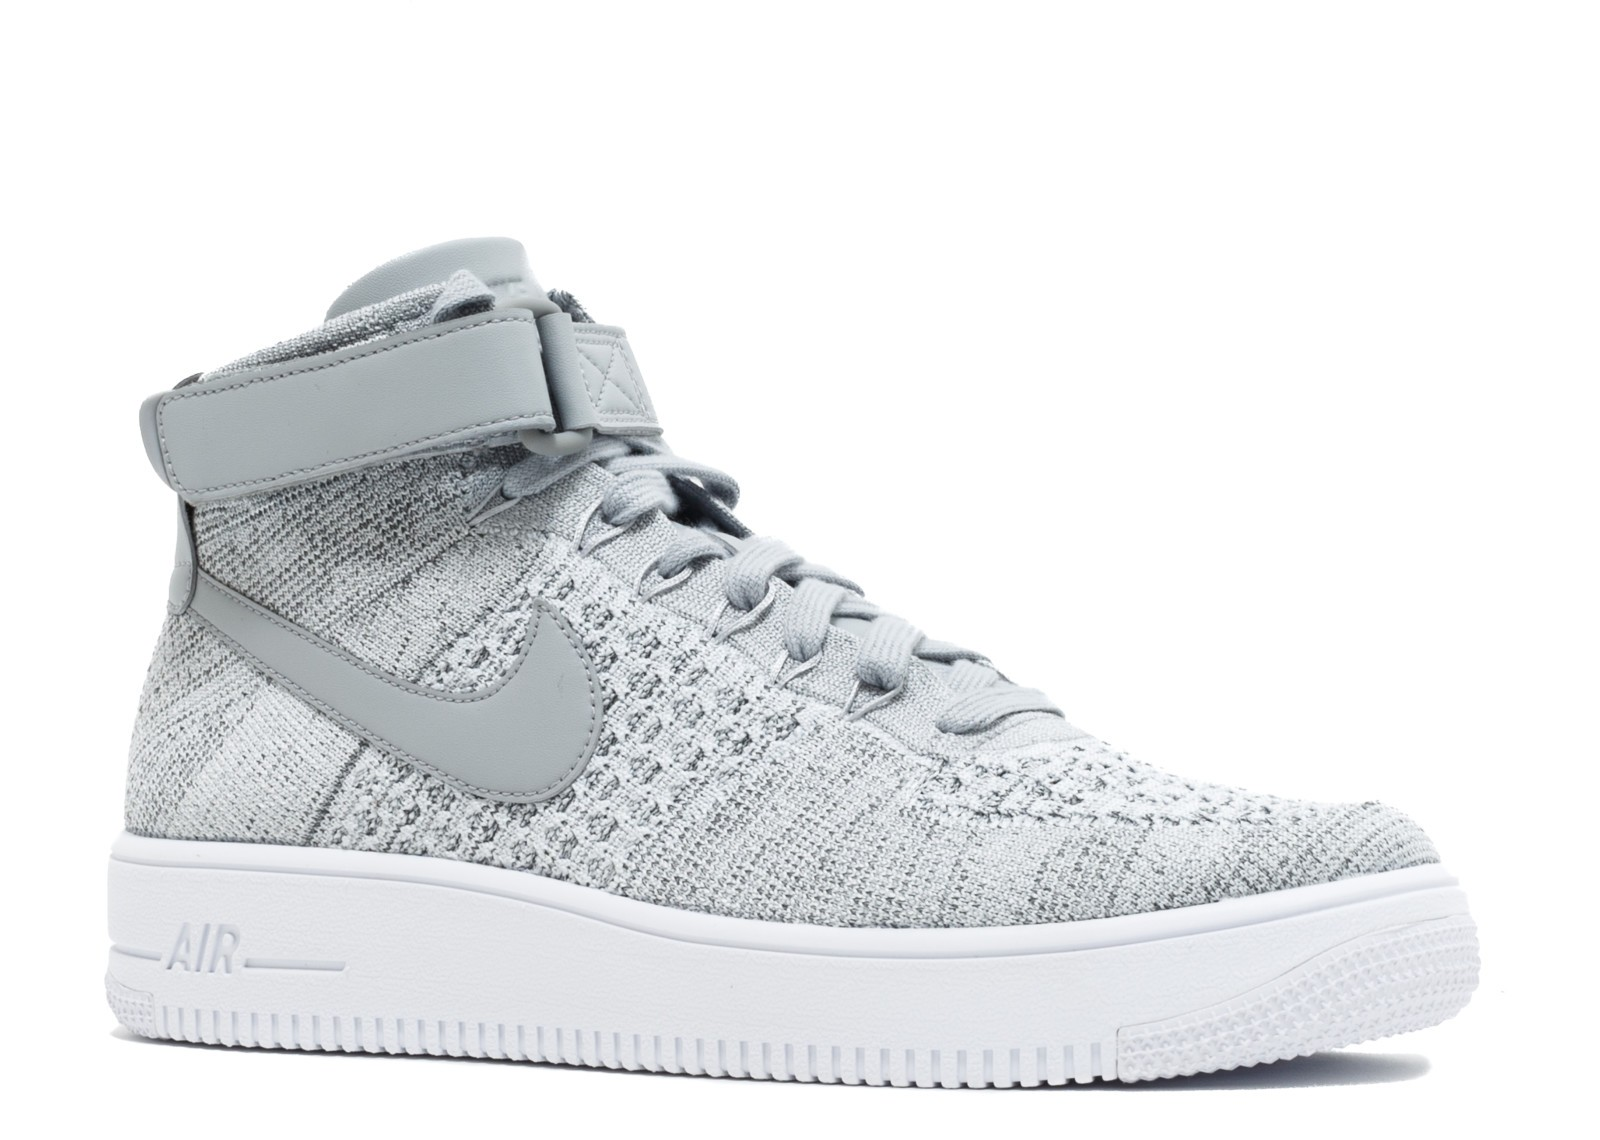 003 White Wolf Ultra Flyknit Mid Force Grey Air Nike 817420 1 9IYHEW2D